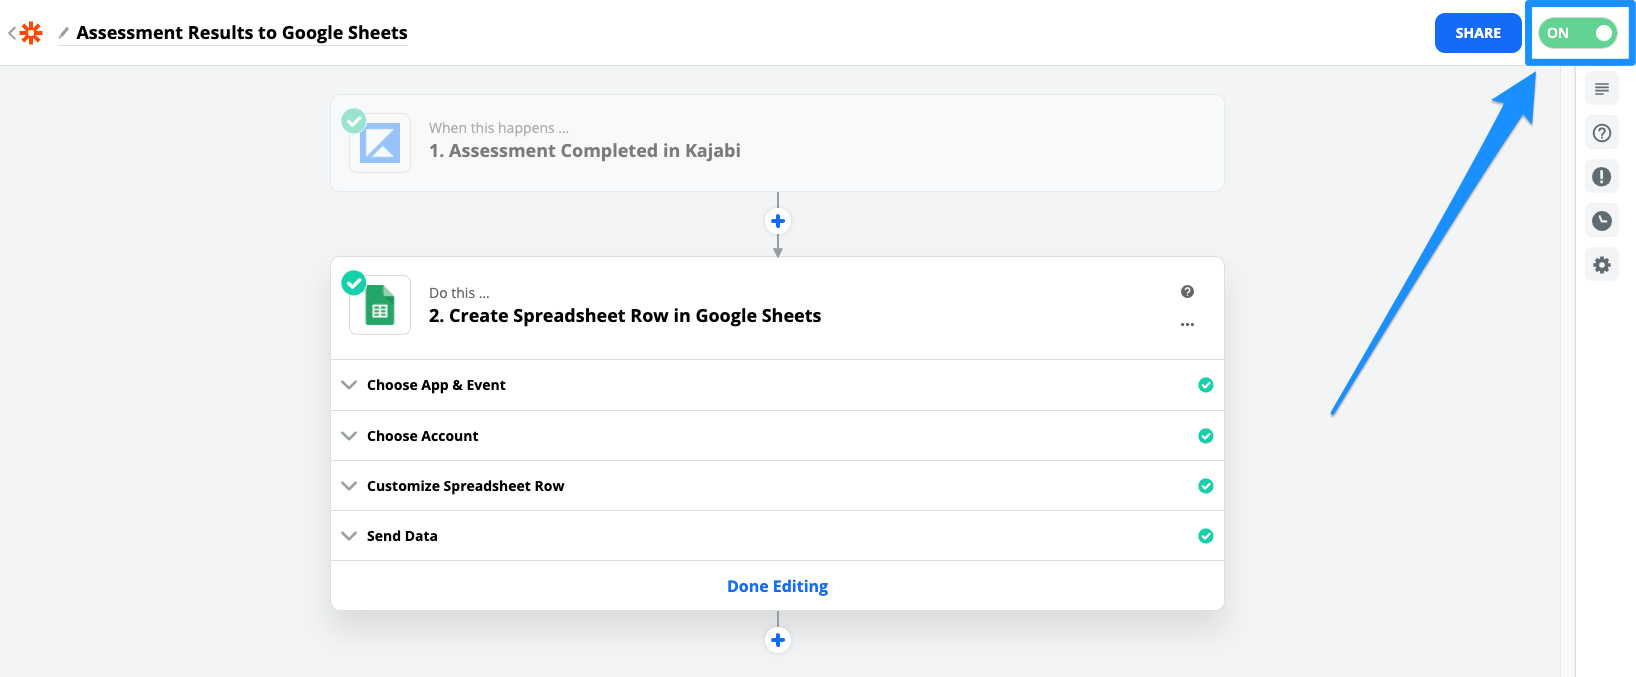 How to Send Assessment Results to Google Sheets